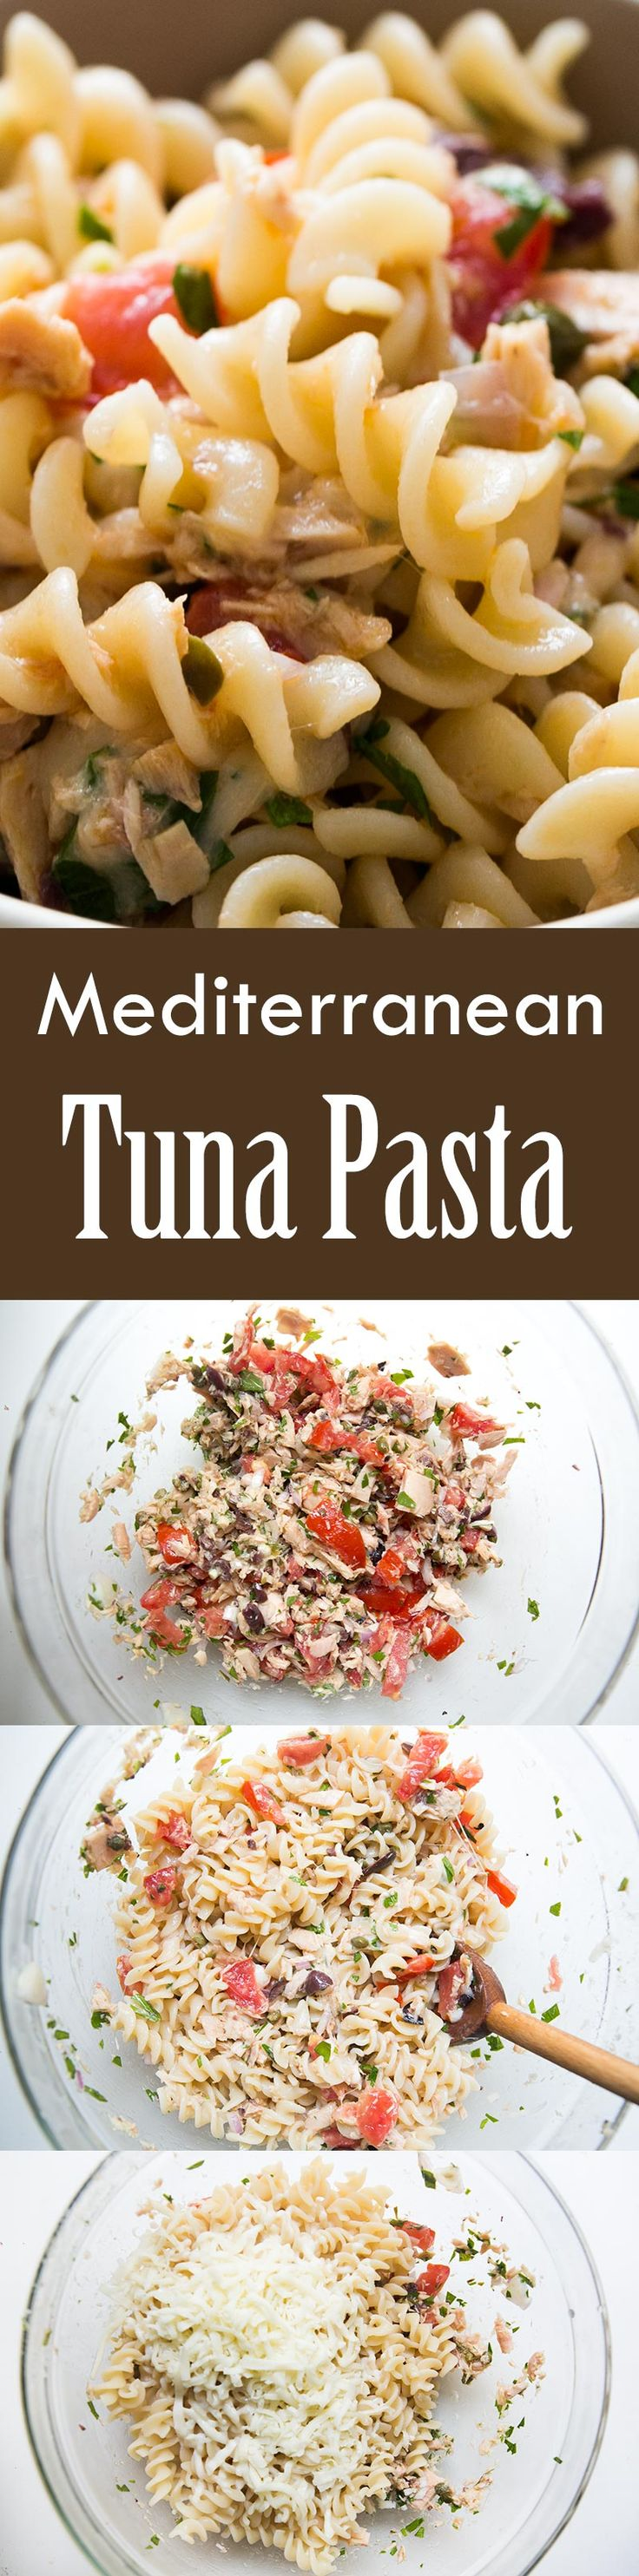 Quick and easy midweek dinner! Takes only 30 minutes to make. Tuna pasta with canned tuna, tomato, red onion, kalamata olives, lemon, capers, and Mozzarella cheese. A family favorite! On SimplyRecipes.com